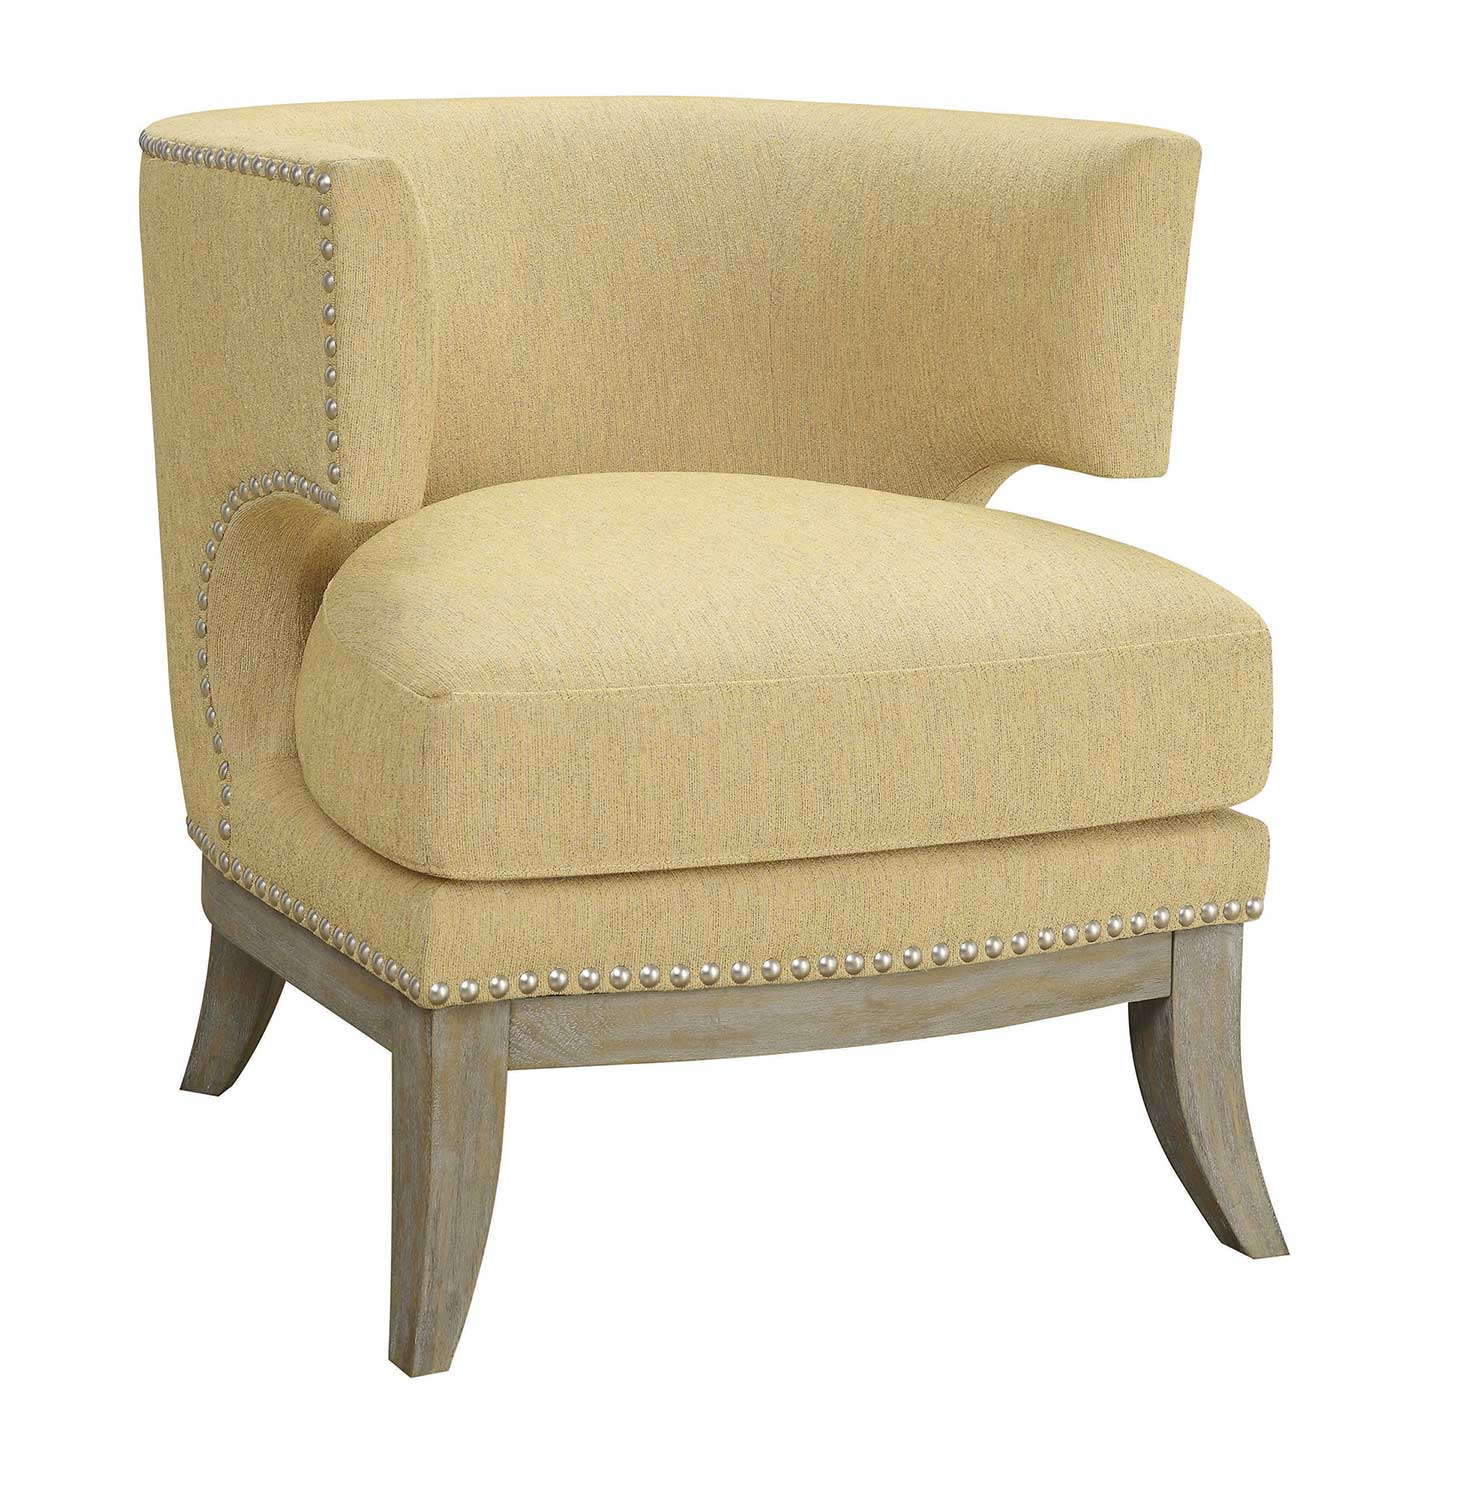 Coaster 902562 Accent Chair - Yellow